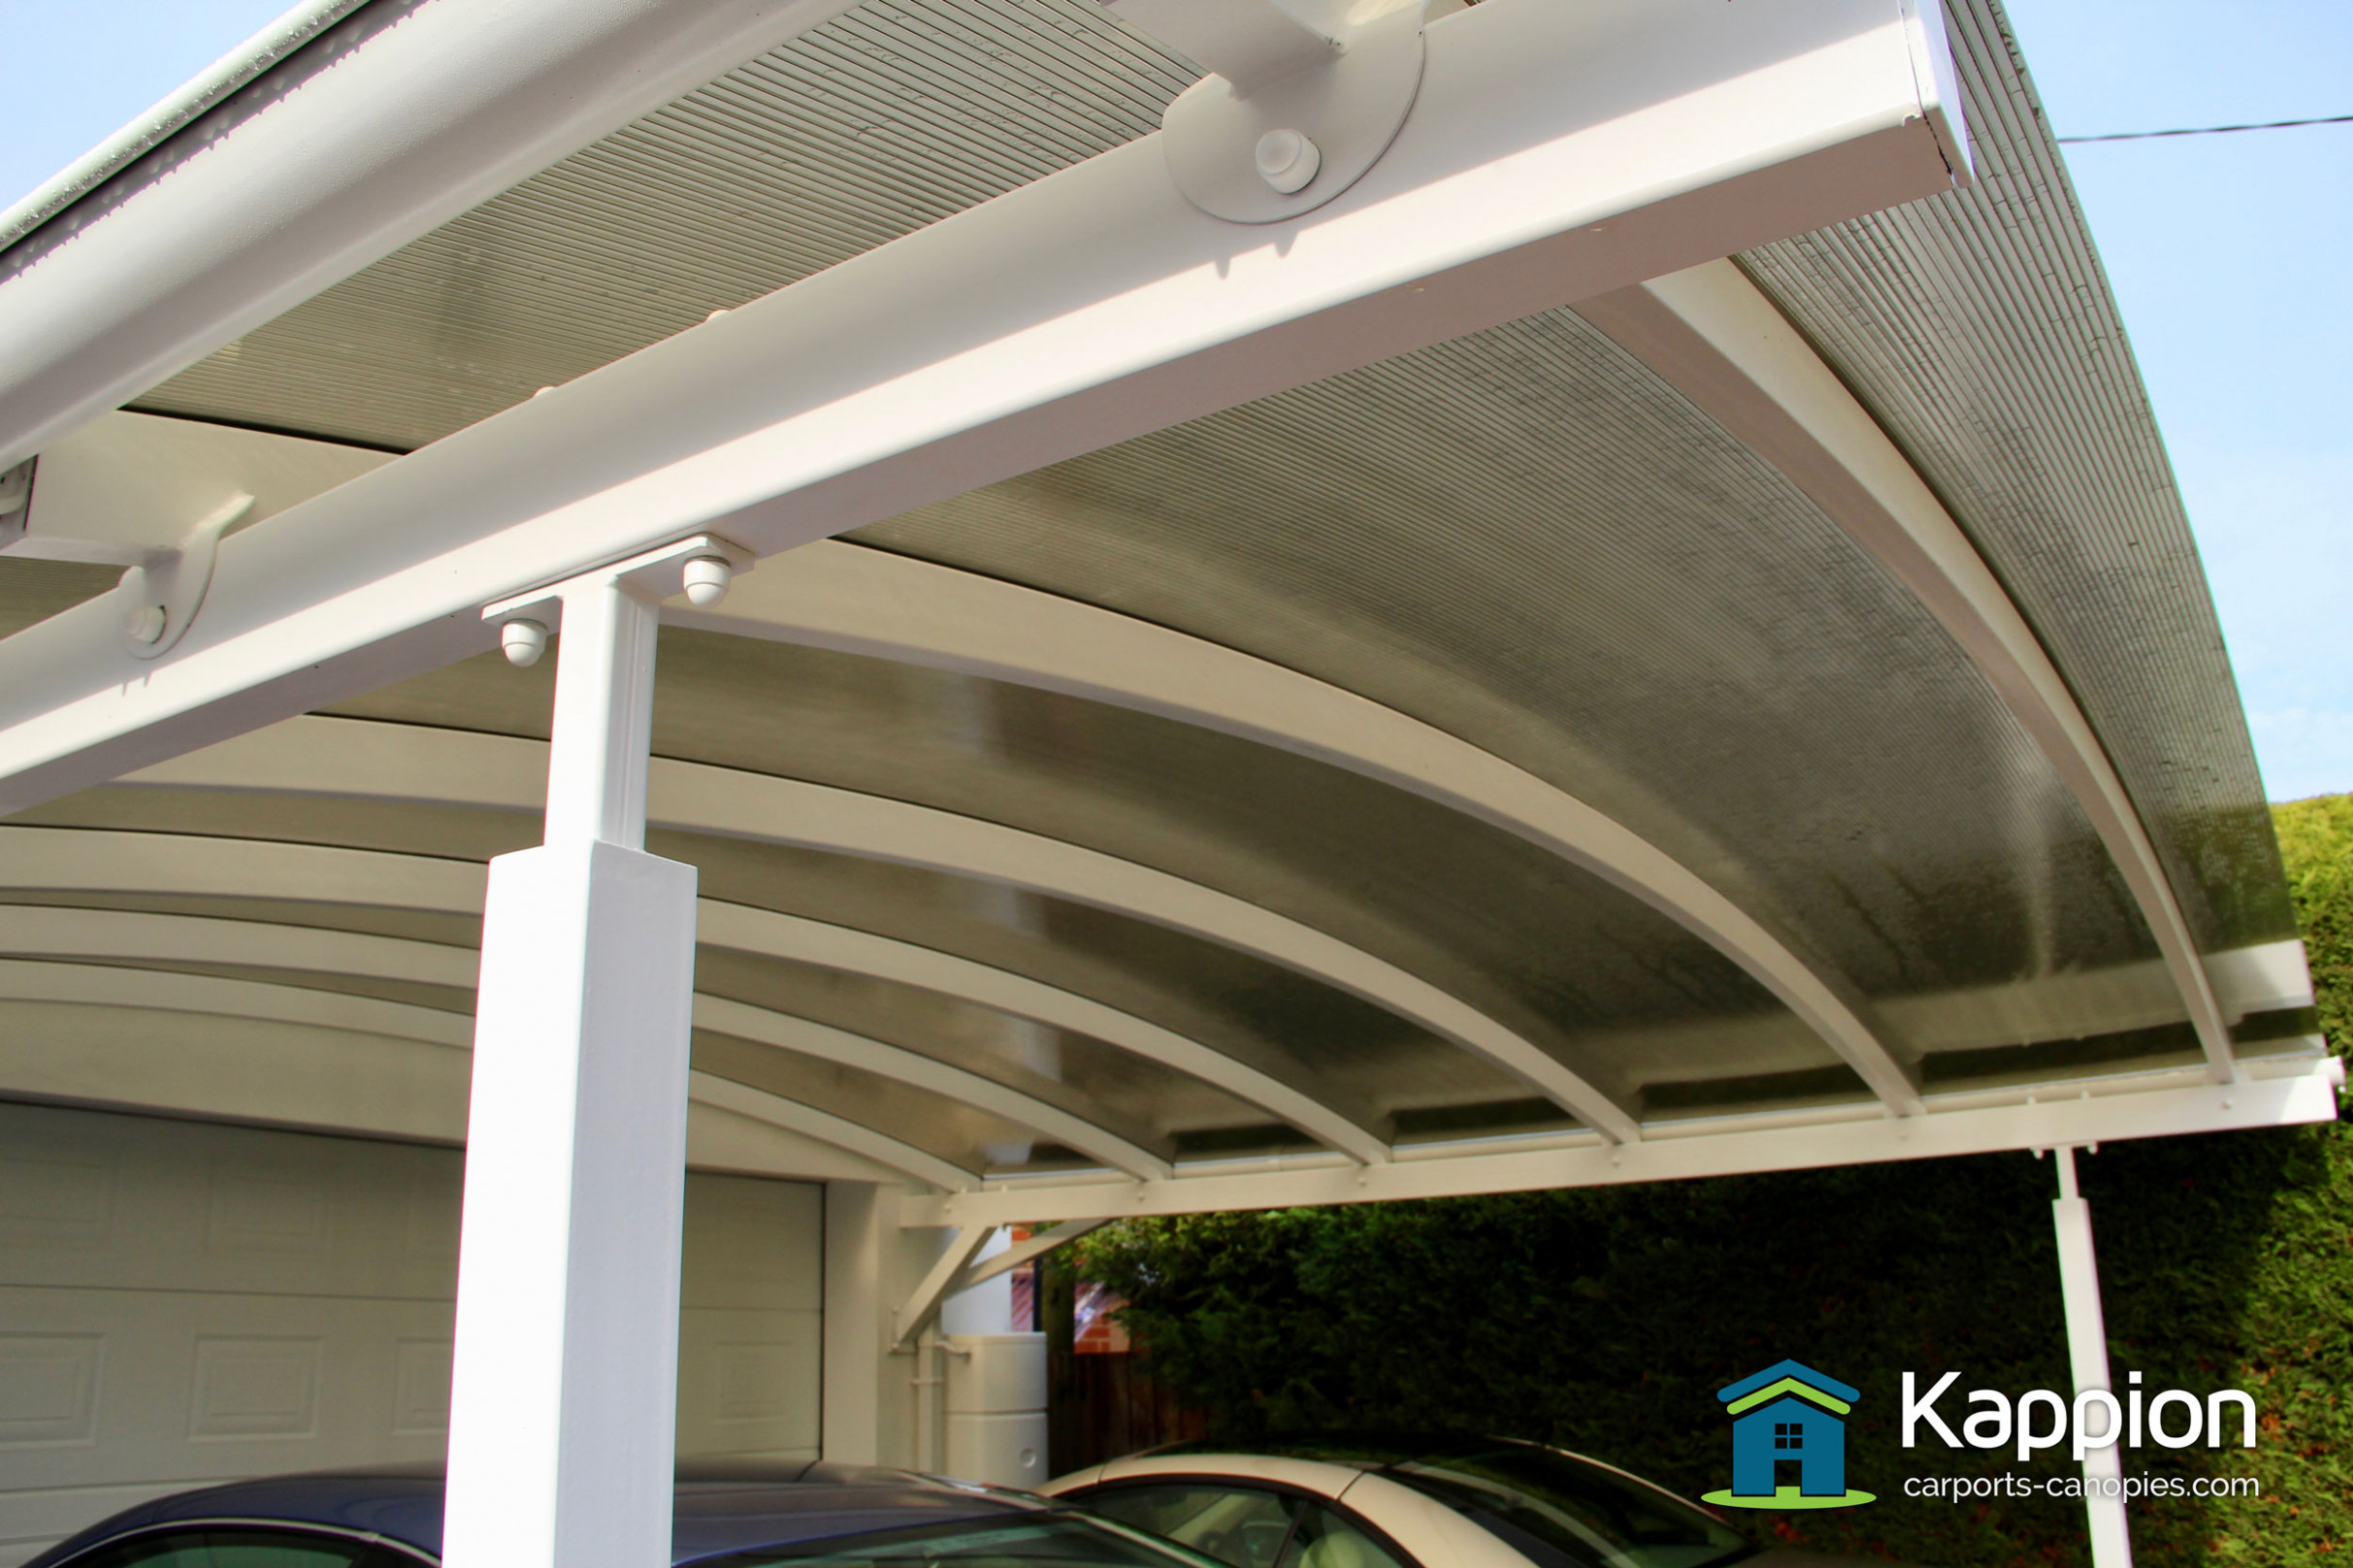 Double Carport Canopy Installed in Salisbury | Kappion ...